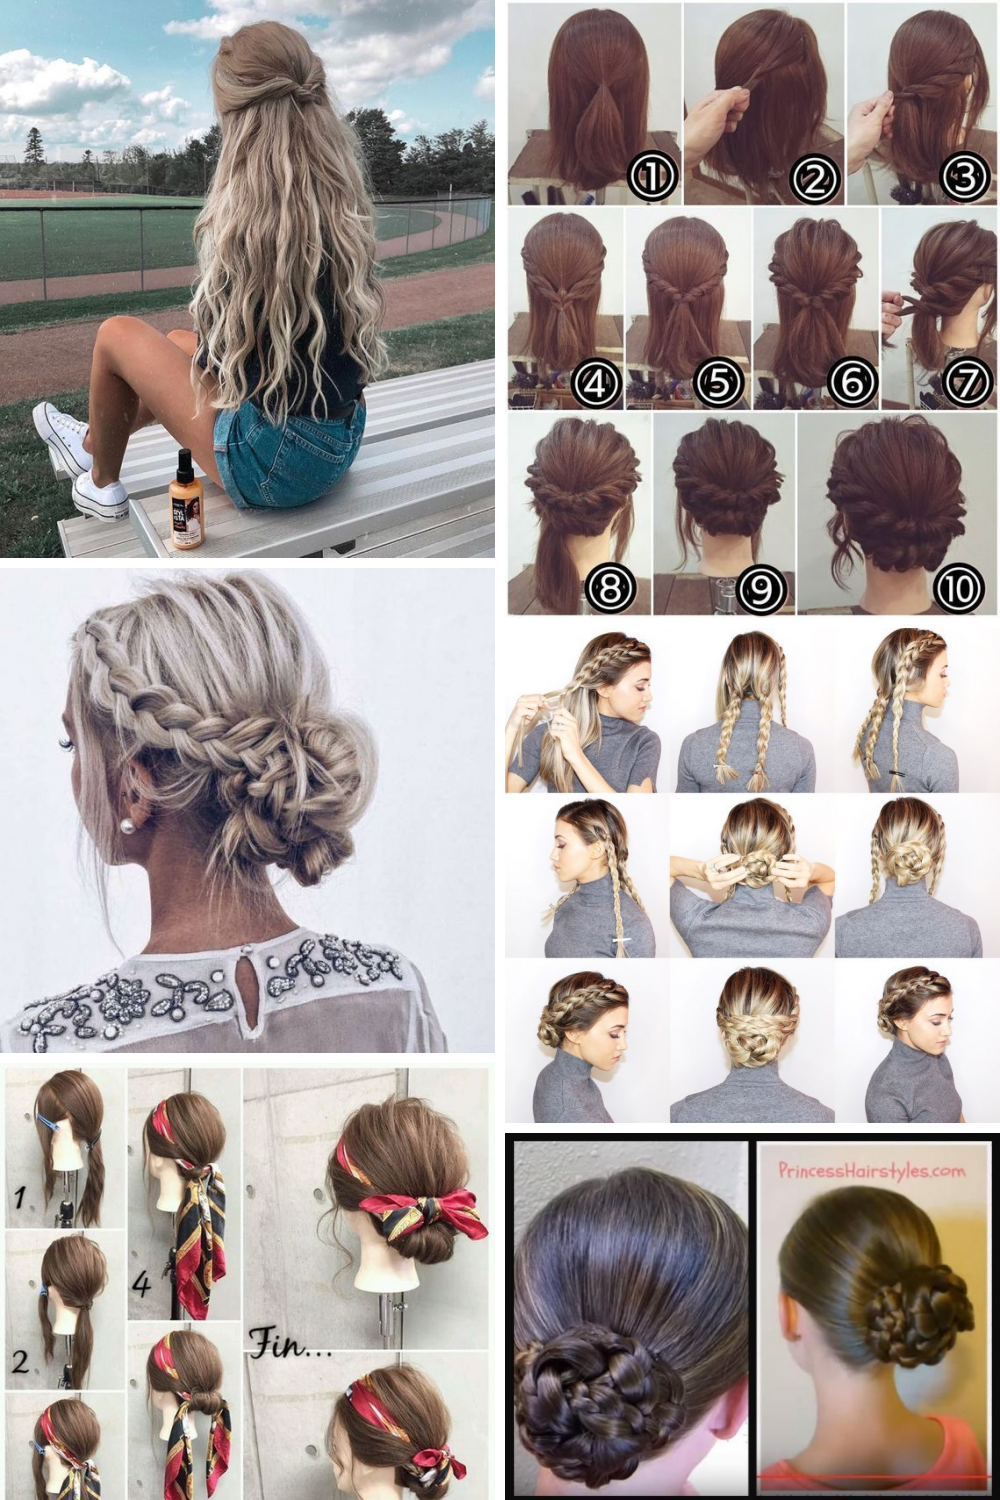 23 Easy Tips For Easy Hairstyles Collection Easy Hairstyles Cute Quick Hairstyles Hair Styles